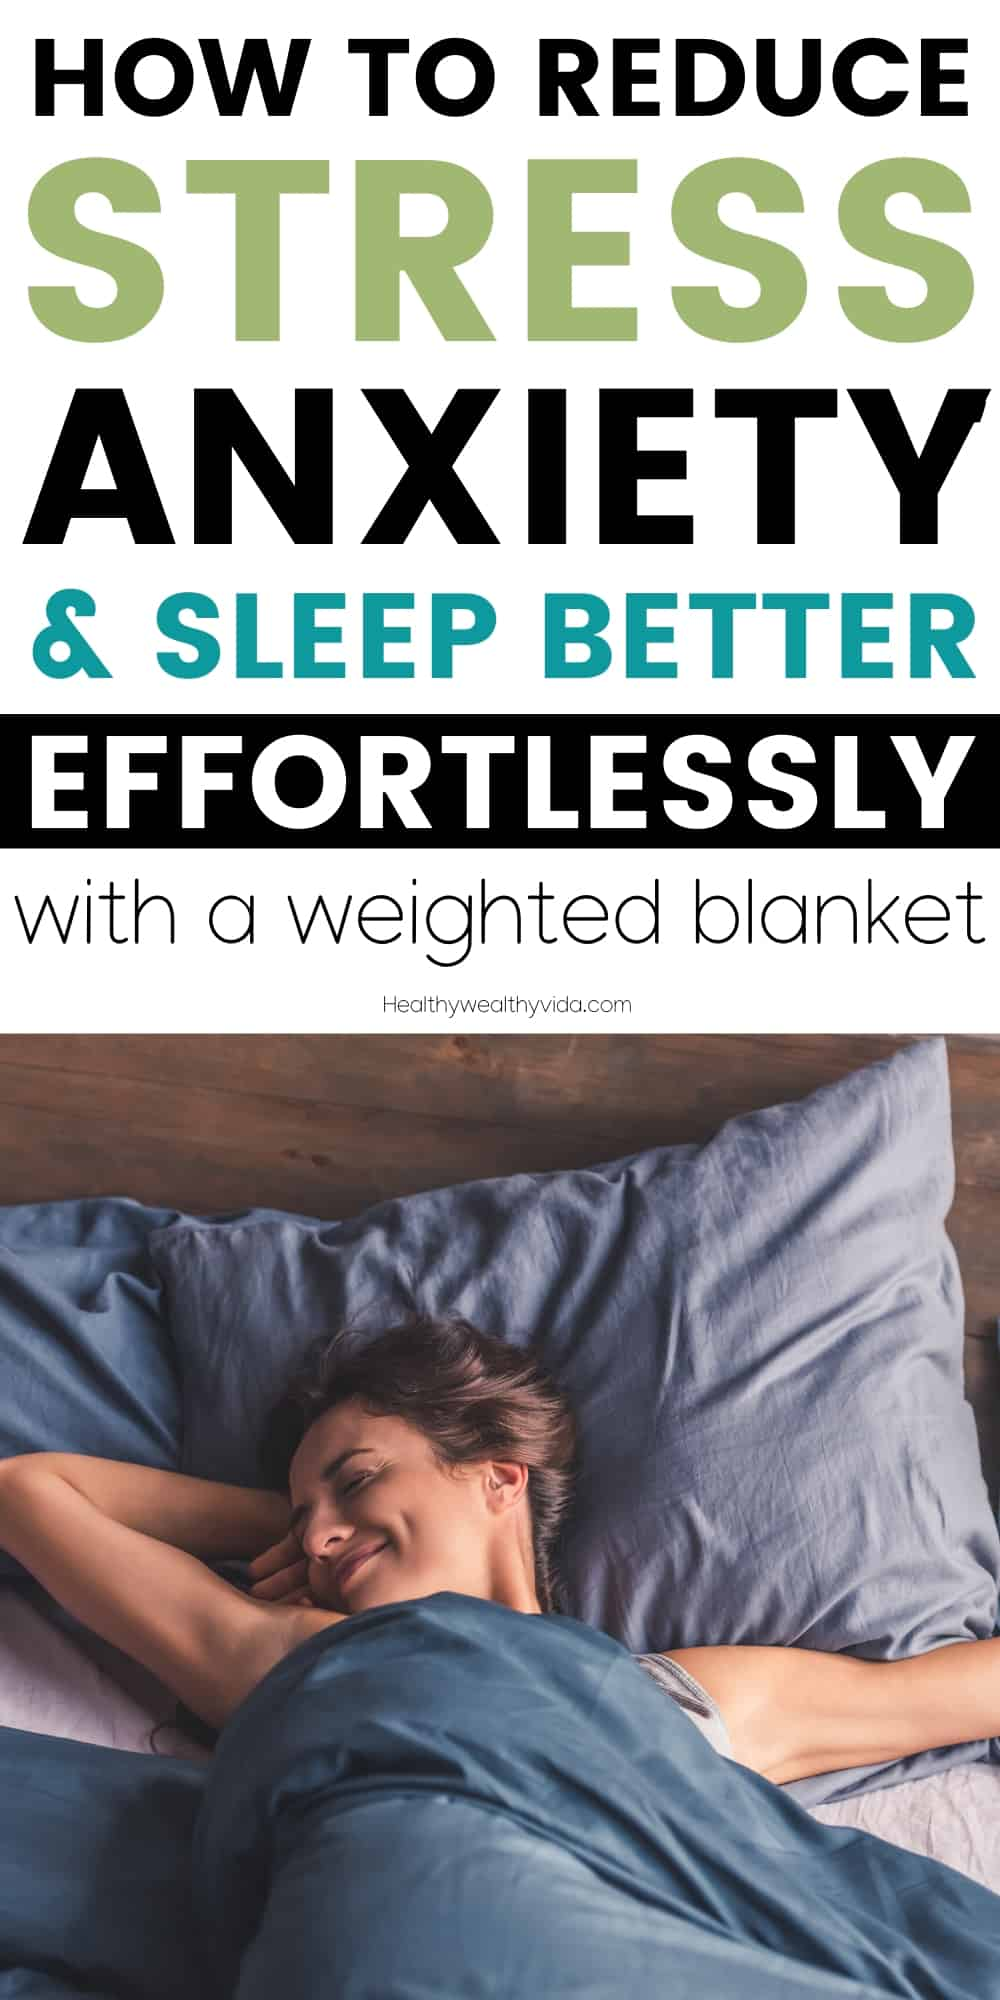 Weighted Blanket For Sleep, anxiety and sress